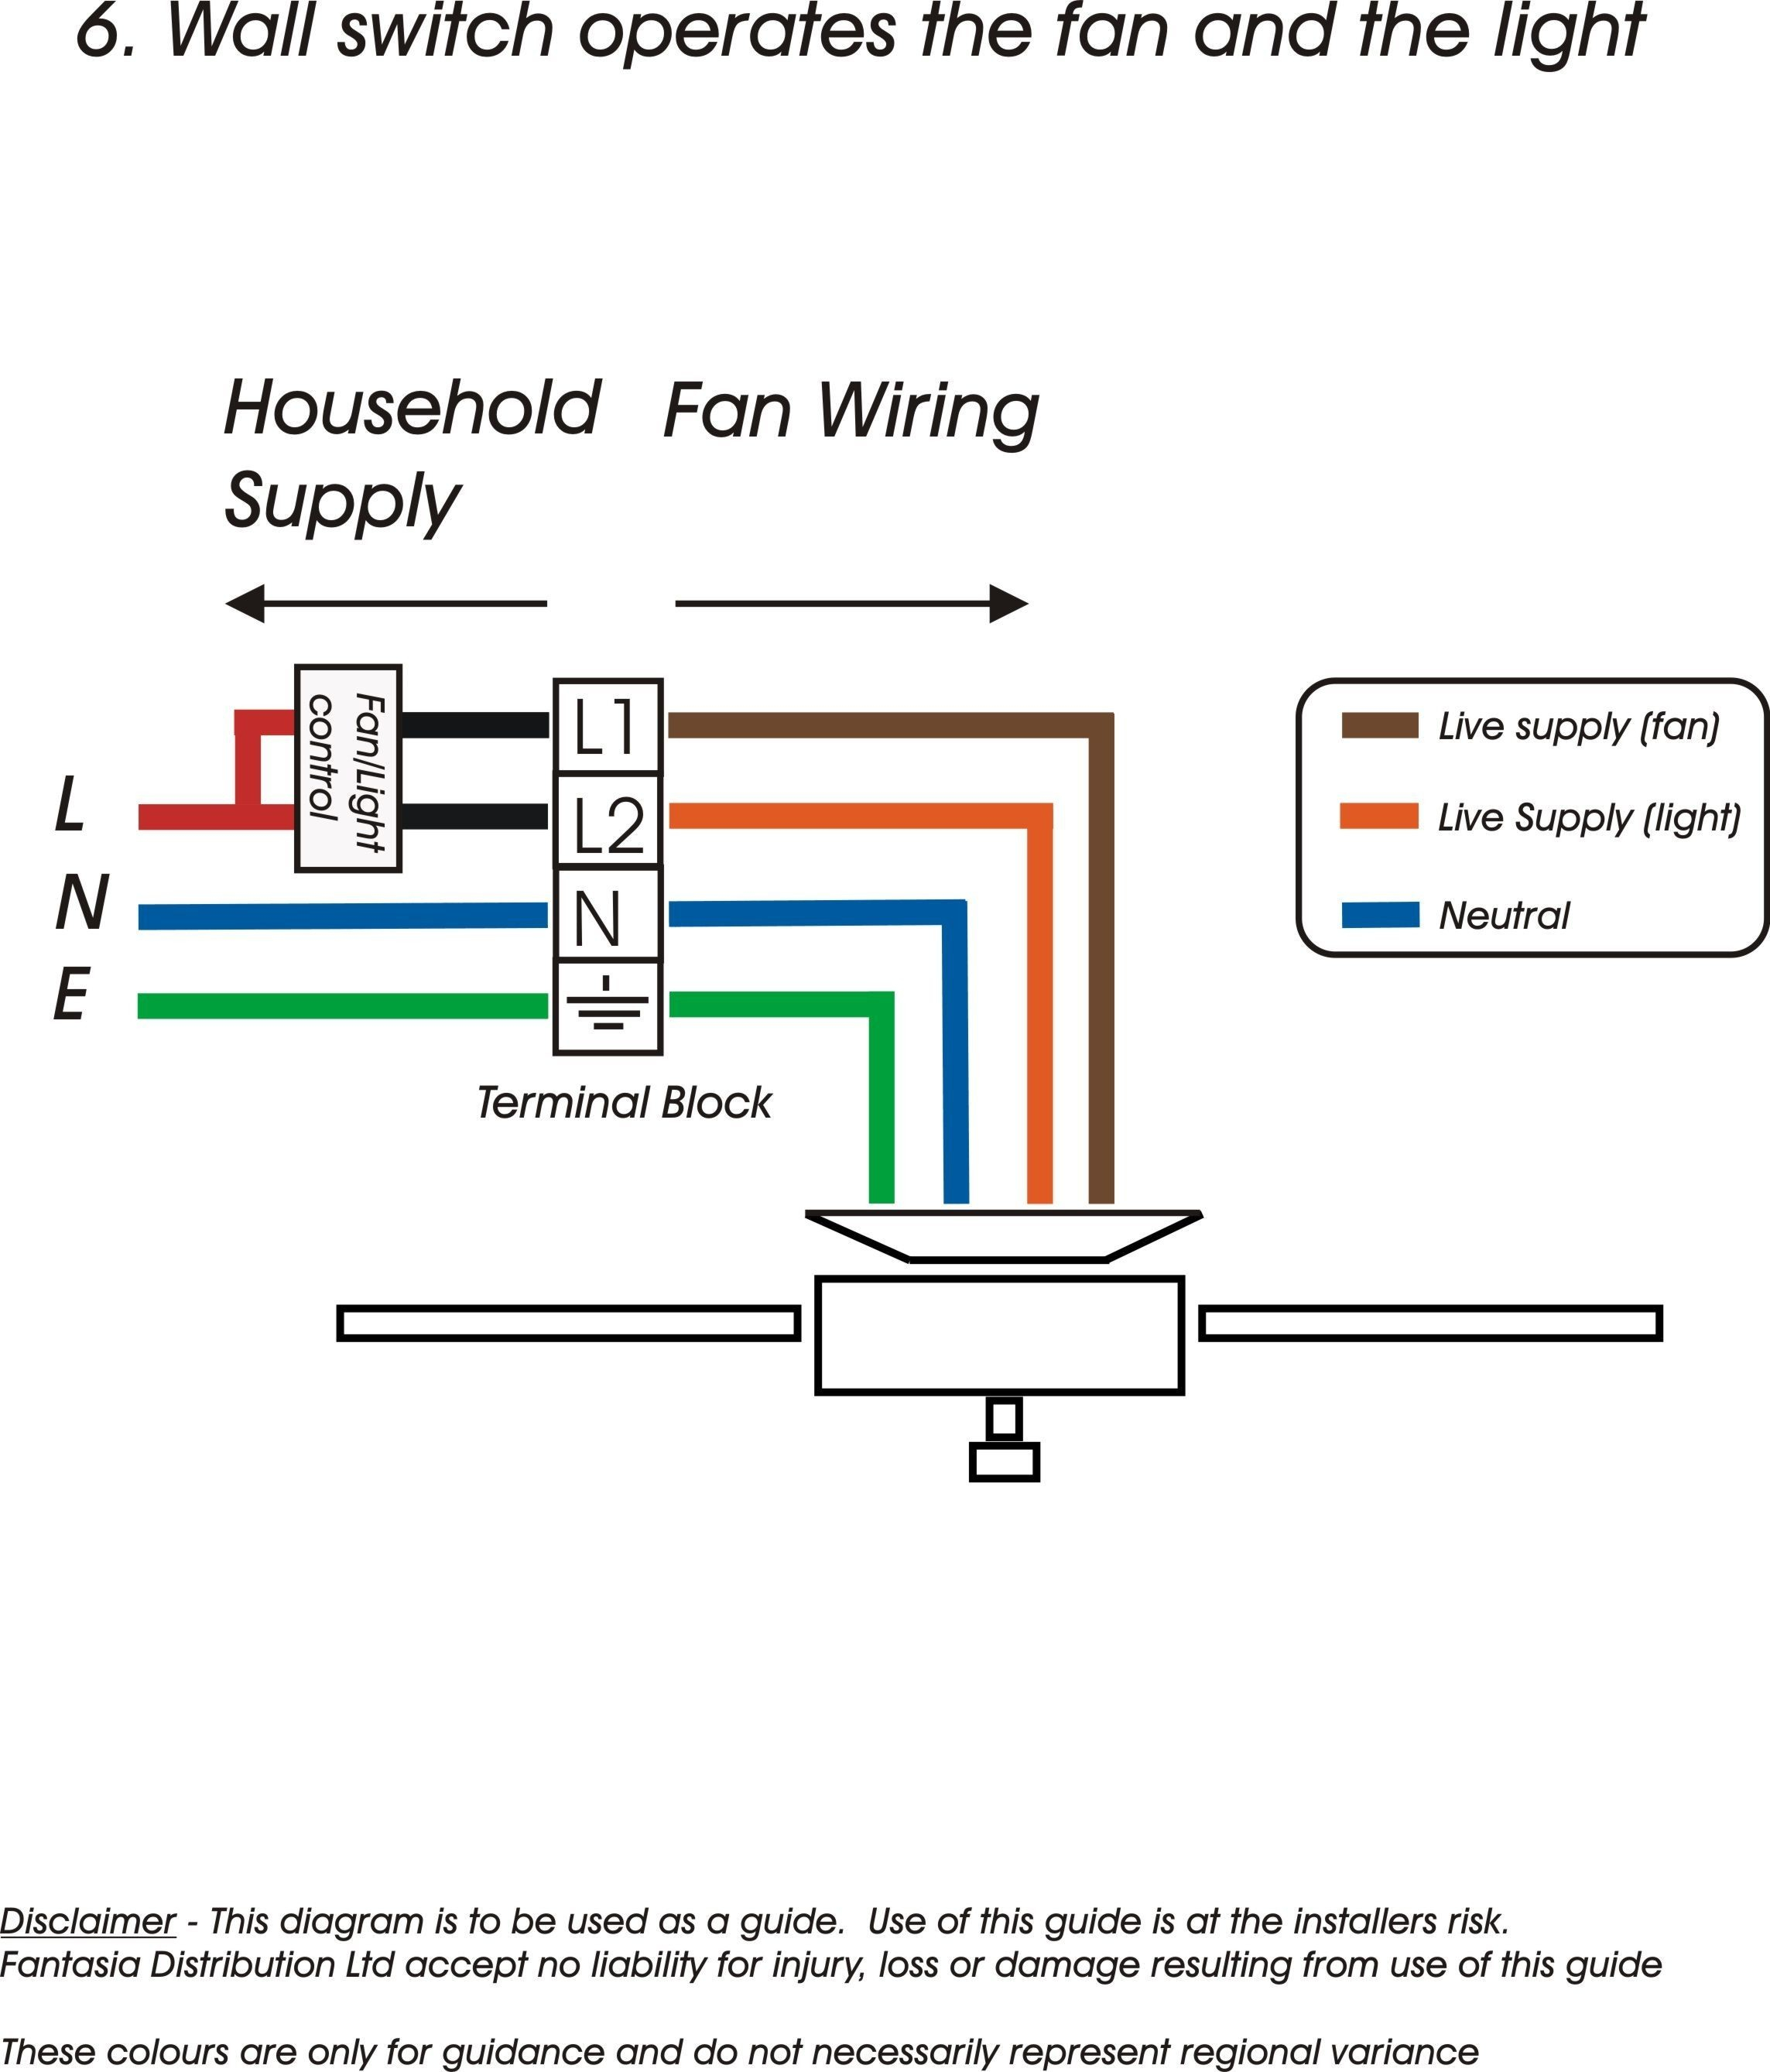 hunter fan wiring diagram remote control Download-Wiring Diagram for A Hunter Ceiling Fan Remote Refrence Hunter Fan Switch Wiring Diagram 4-q